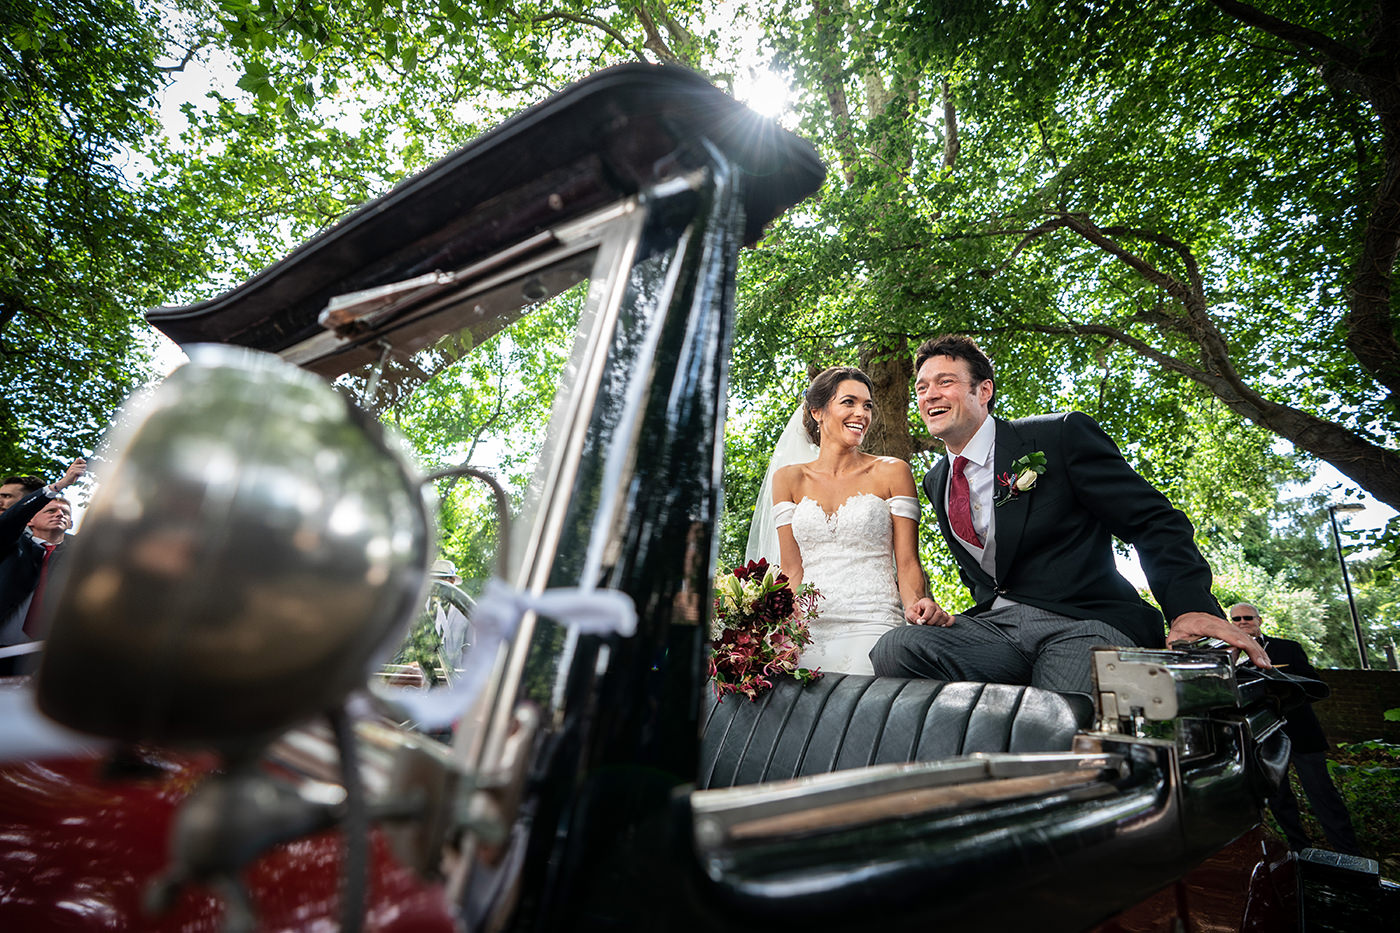 Wimborne Minster Wedding Car